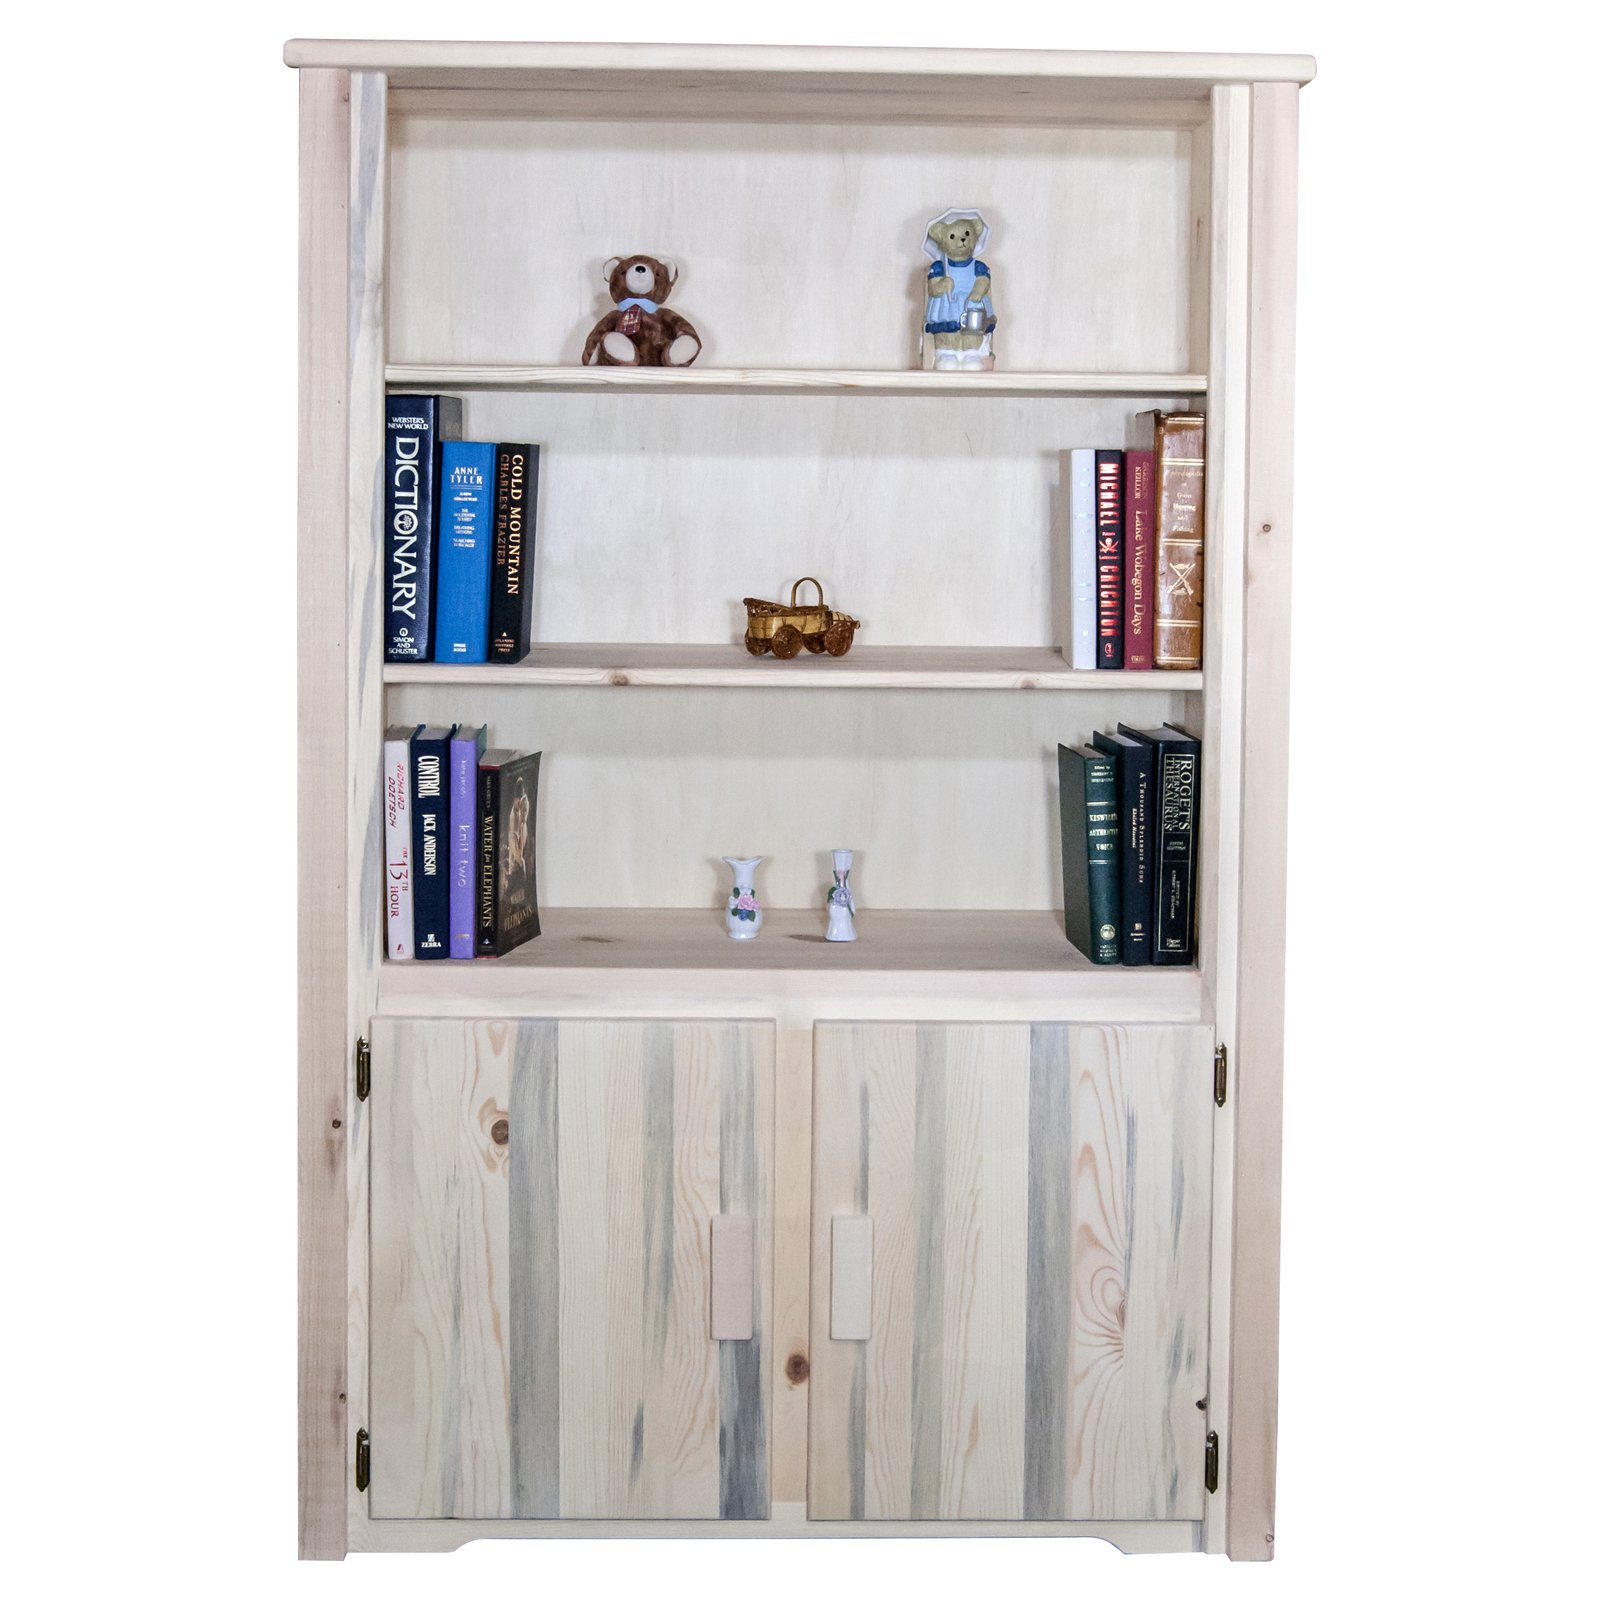 Montana Woodworks Homestead Bookcase with Storage